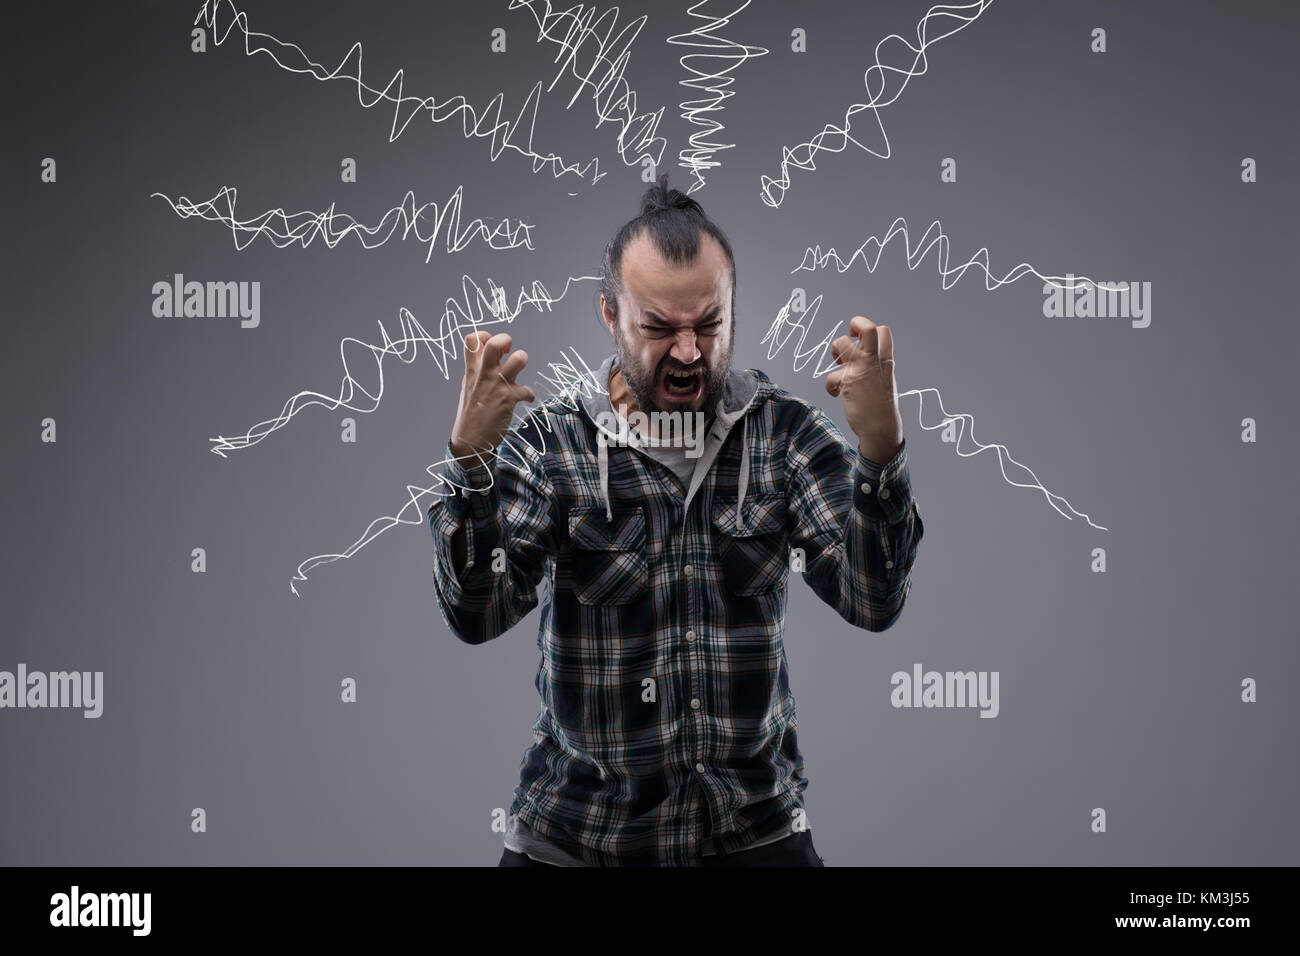 Man in a rage throwing a temper tantrum screaming and clenching his fists with hand drawn squiggles of emotion or - Stock Image